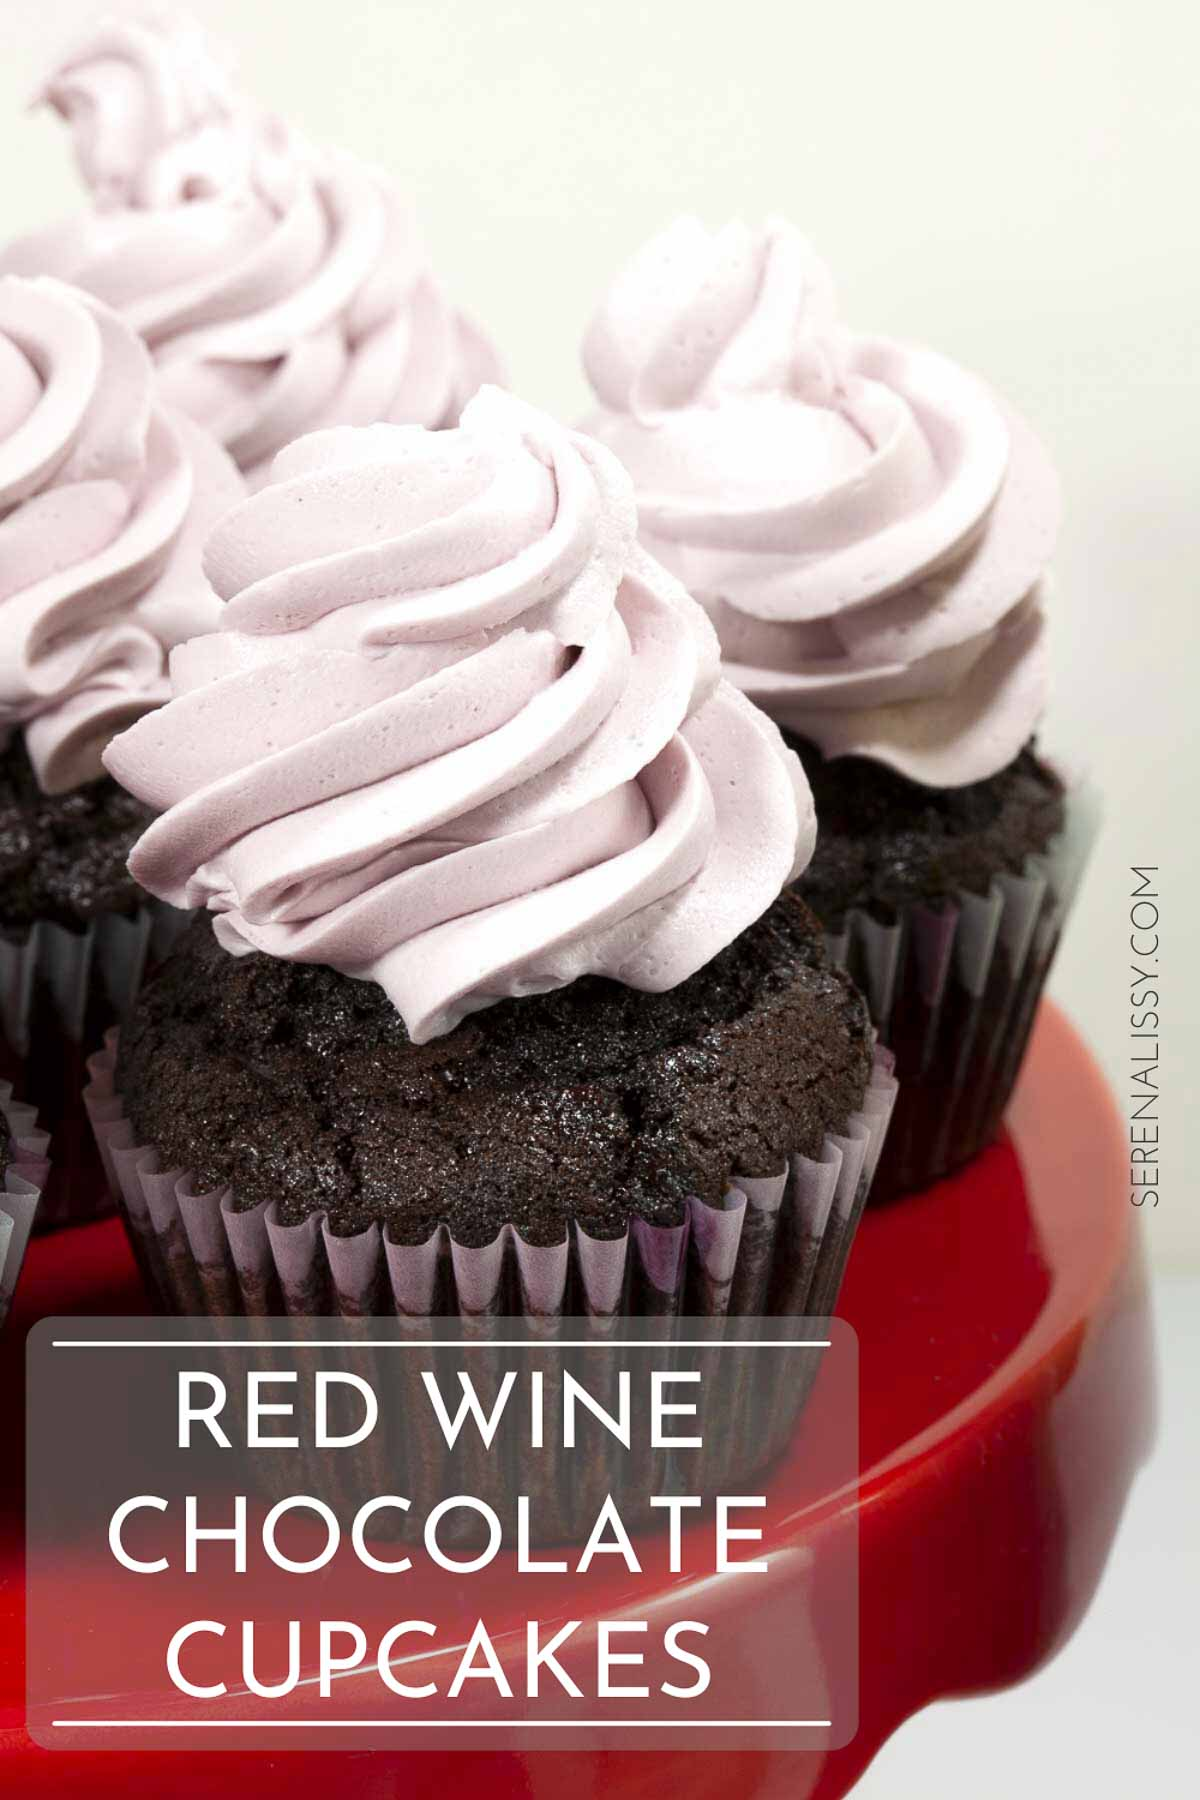 Red Wine Chocolate Cupcakes on Cake Stand